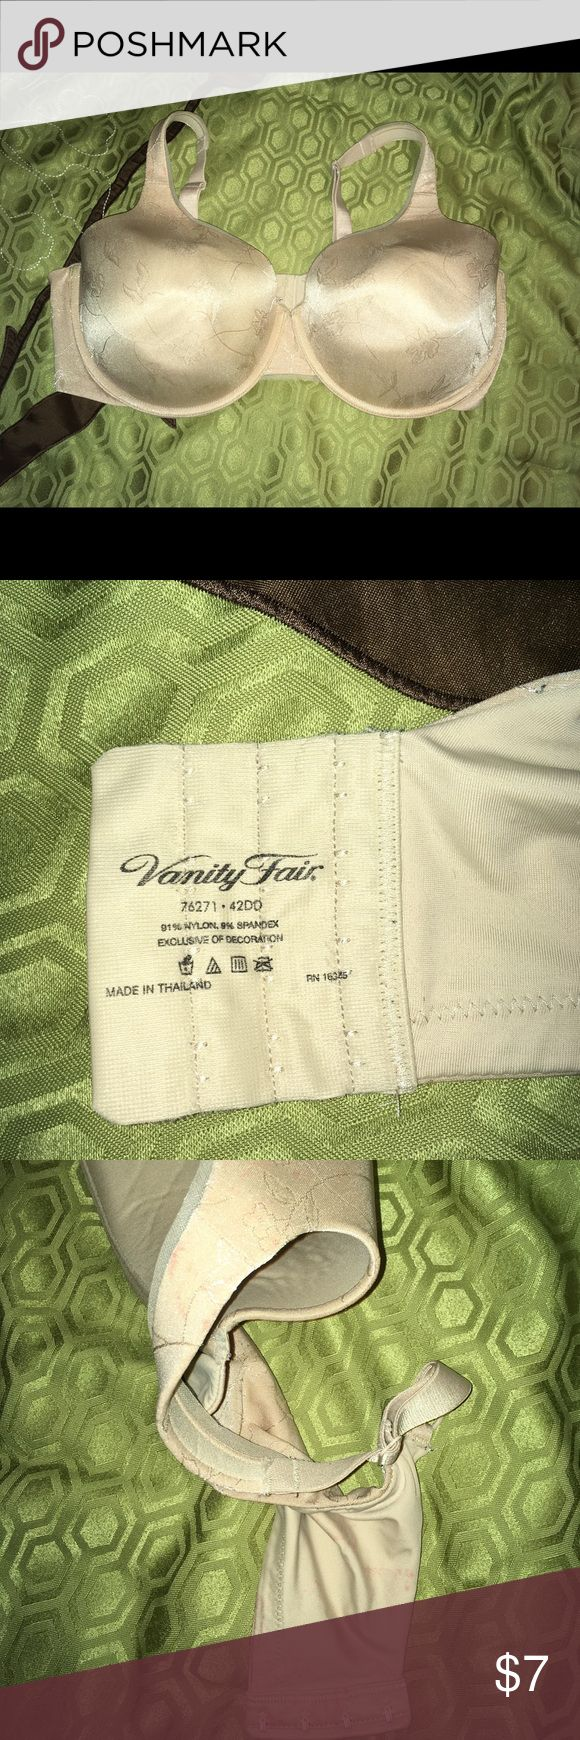 Vanity Fair Cream Bra 42DD Cream colored lined cup Vanity Fair bra size 42DD. Underwire. Good condition. Does have some discoloration on one side strap and band. Vanity Fair Intimates & Sleepwear Bras